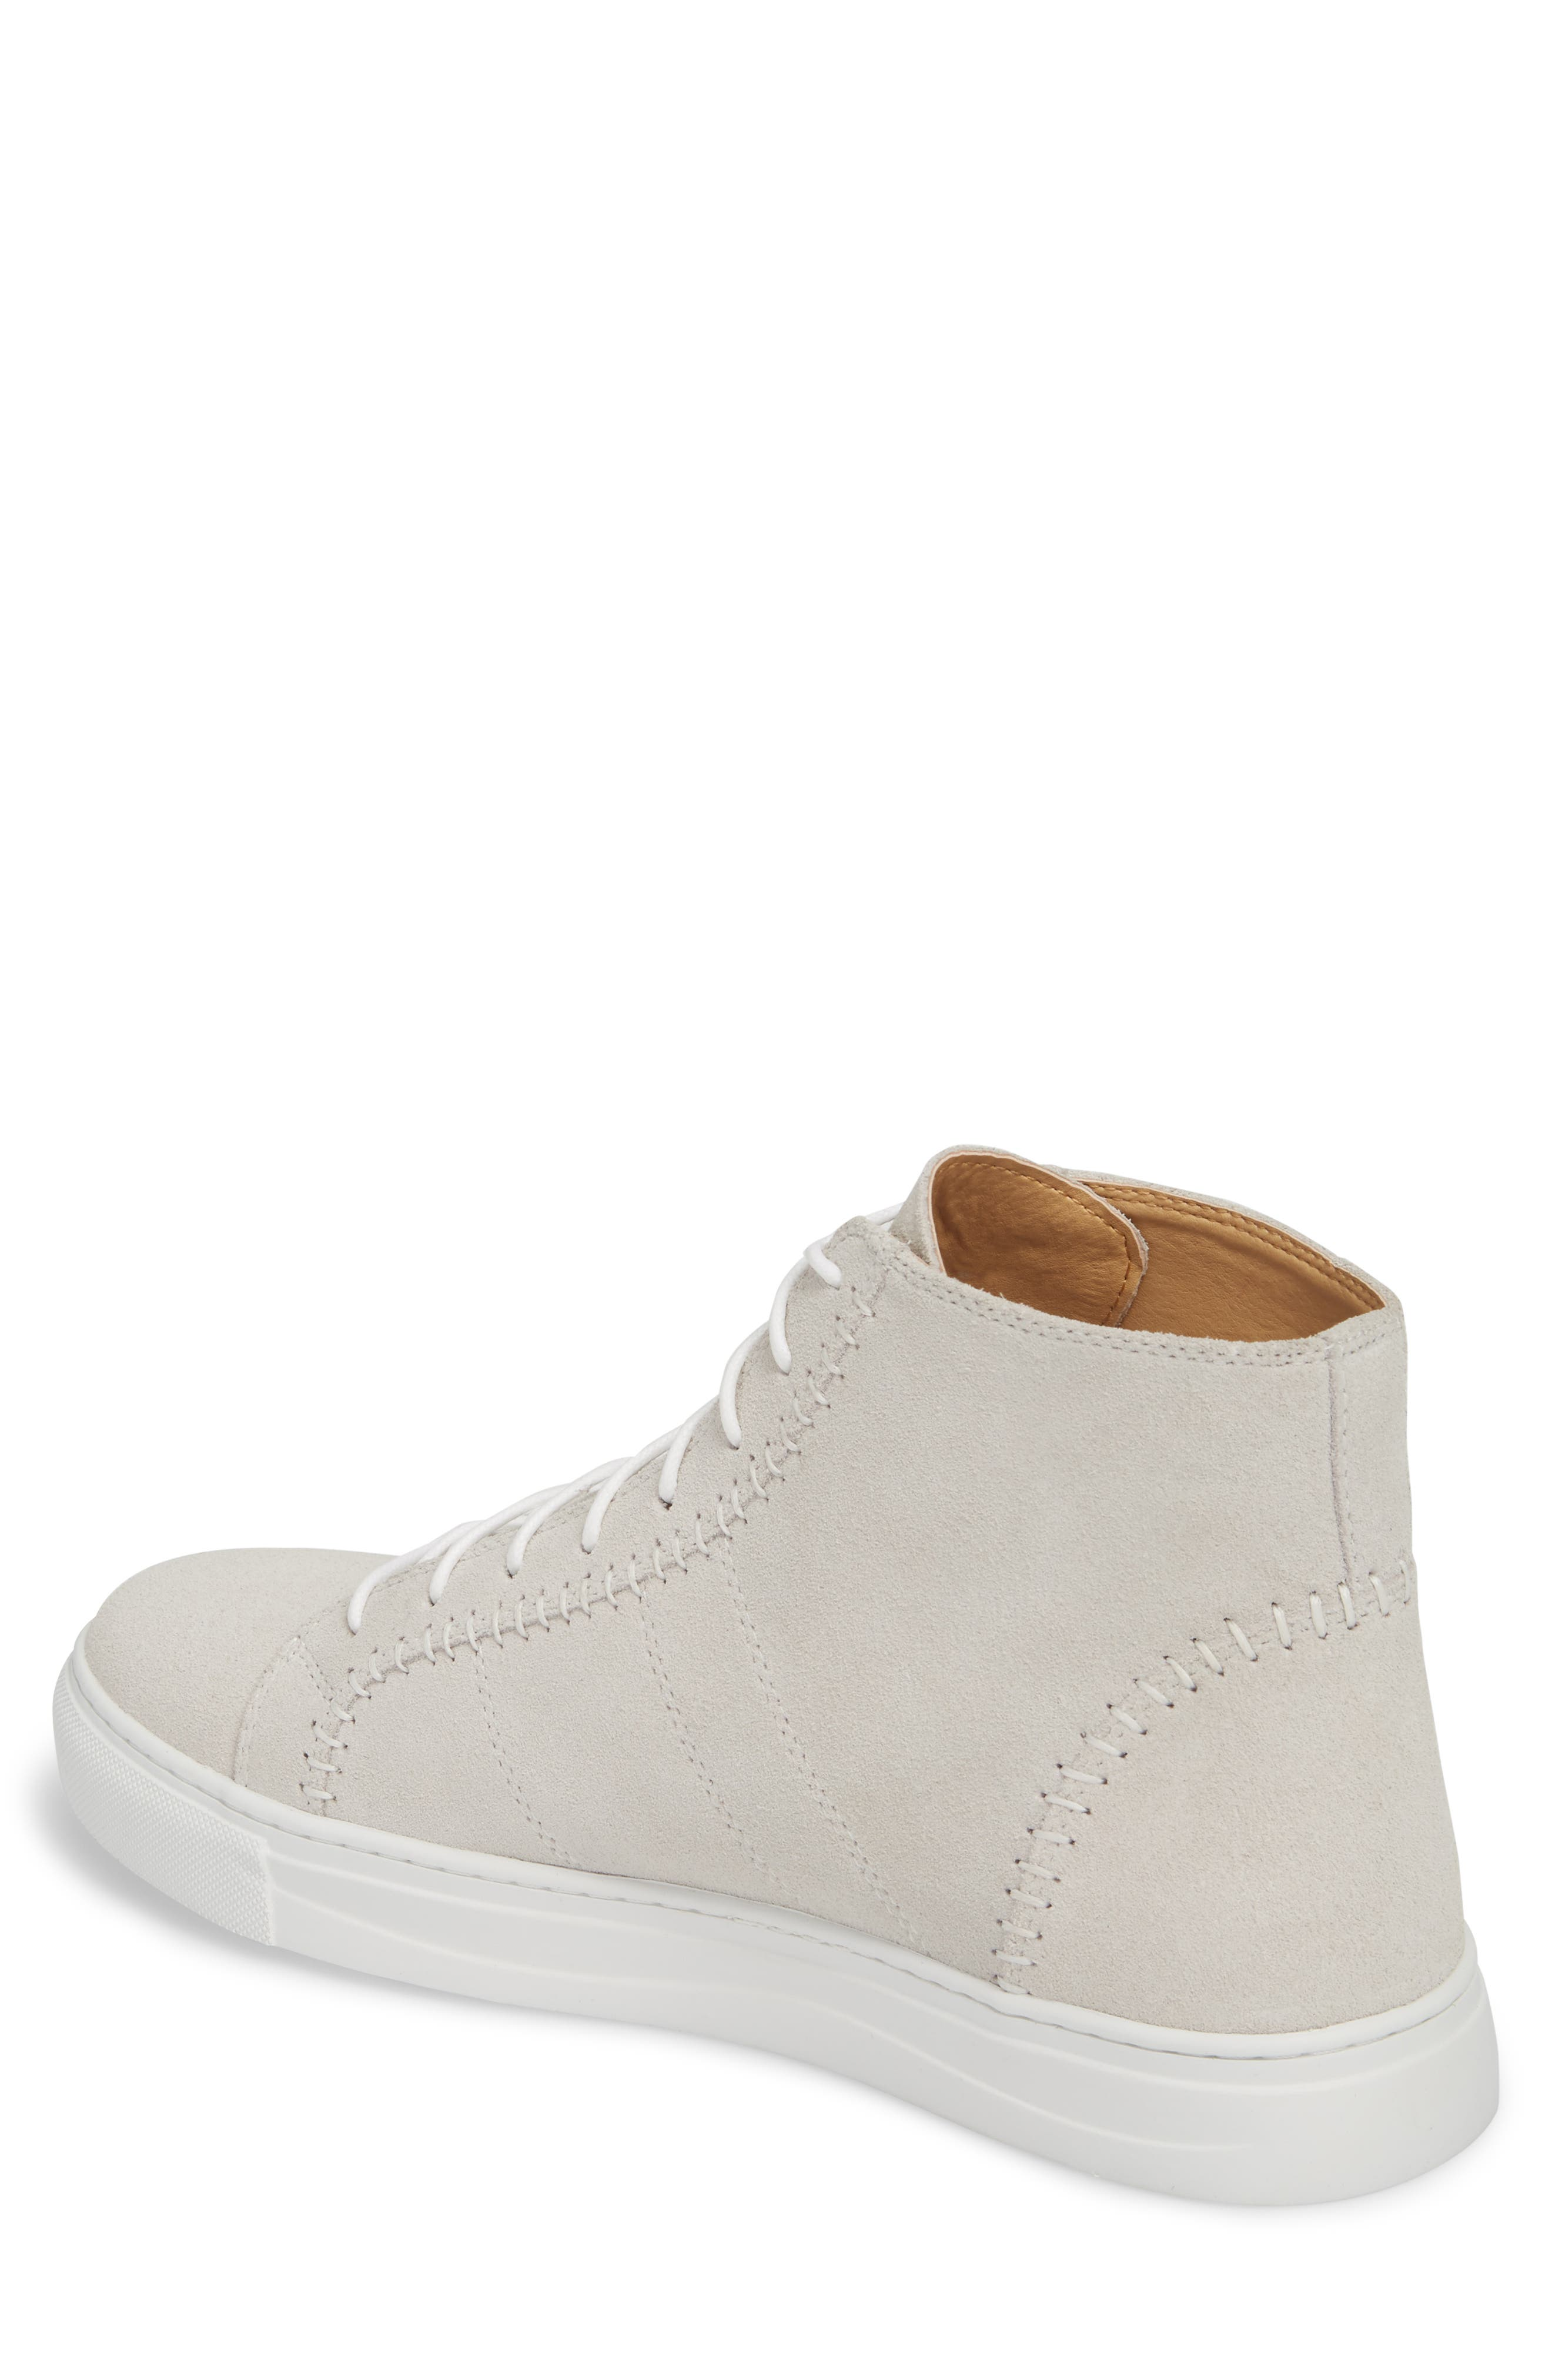 High Top Sneaker,                             Alternate thumbnail 2, color,                             White Suede